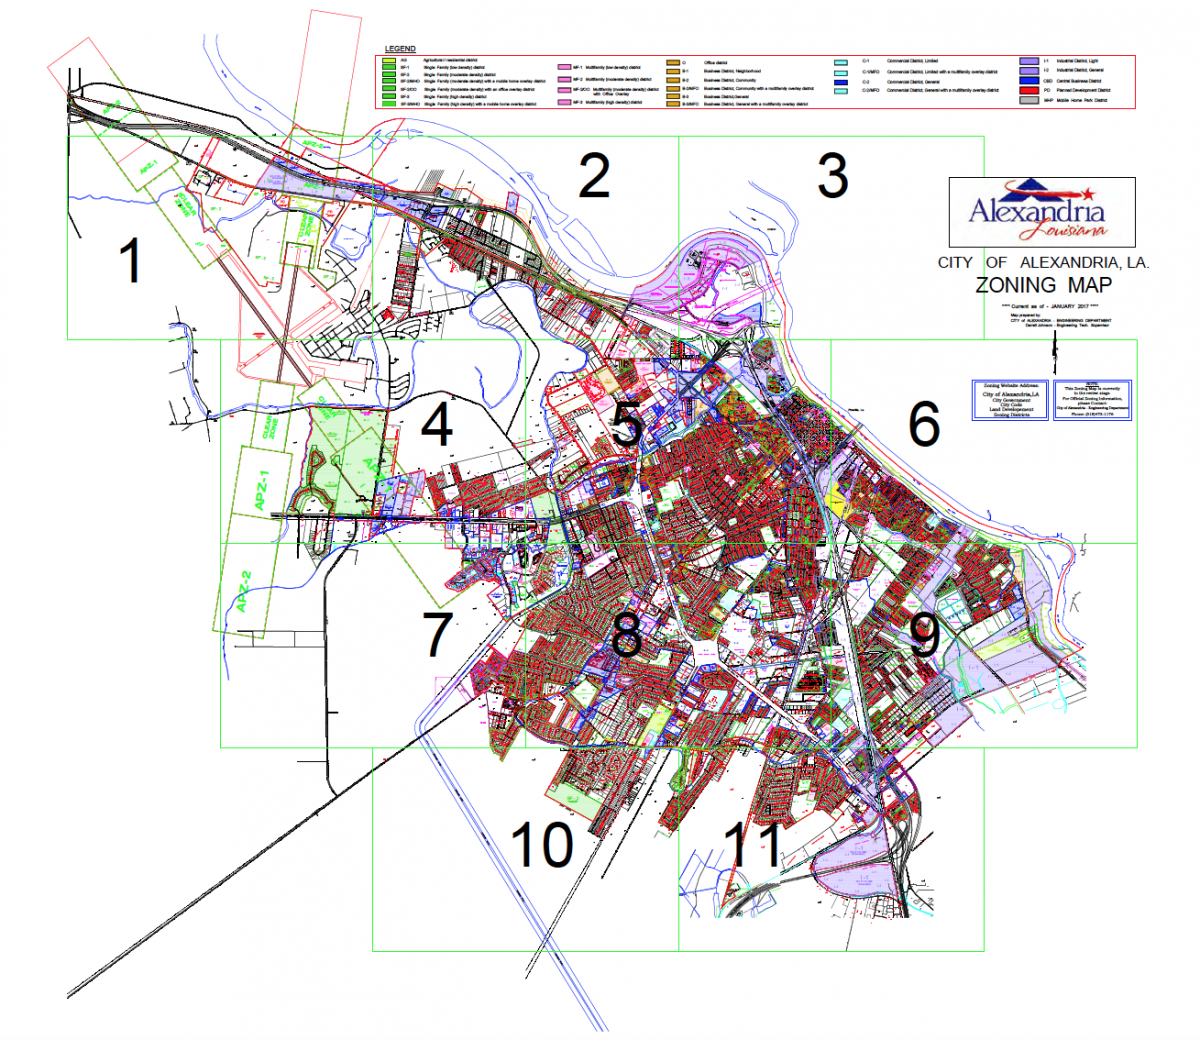 Zoning Map - City of Alexandria Louisiana